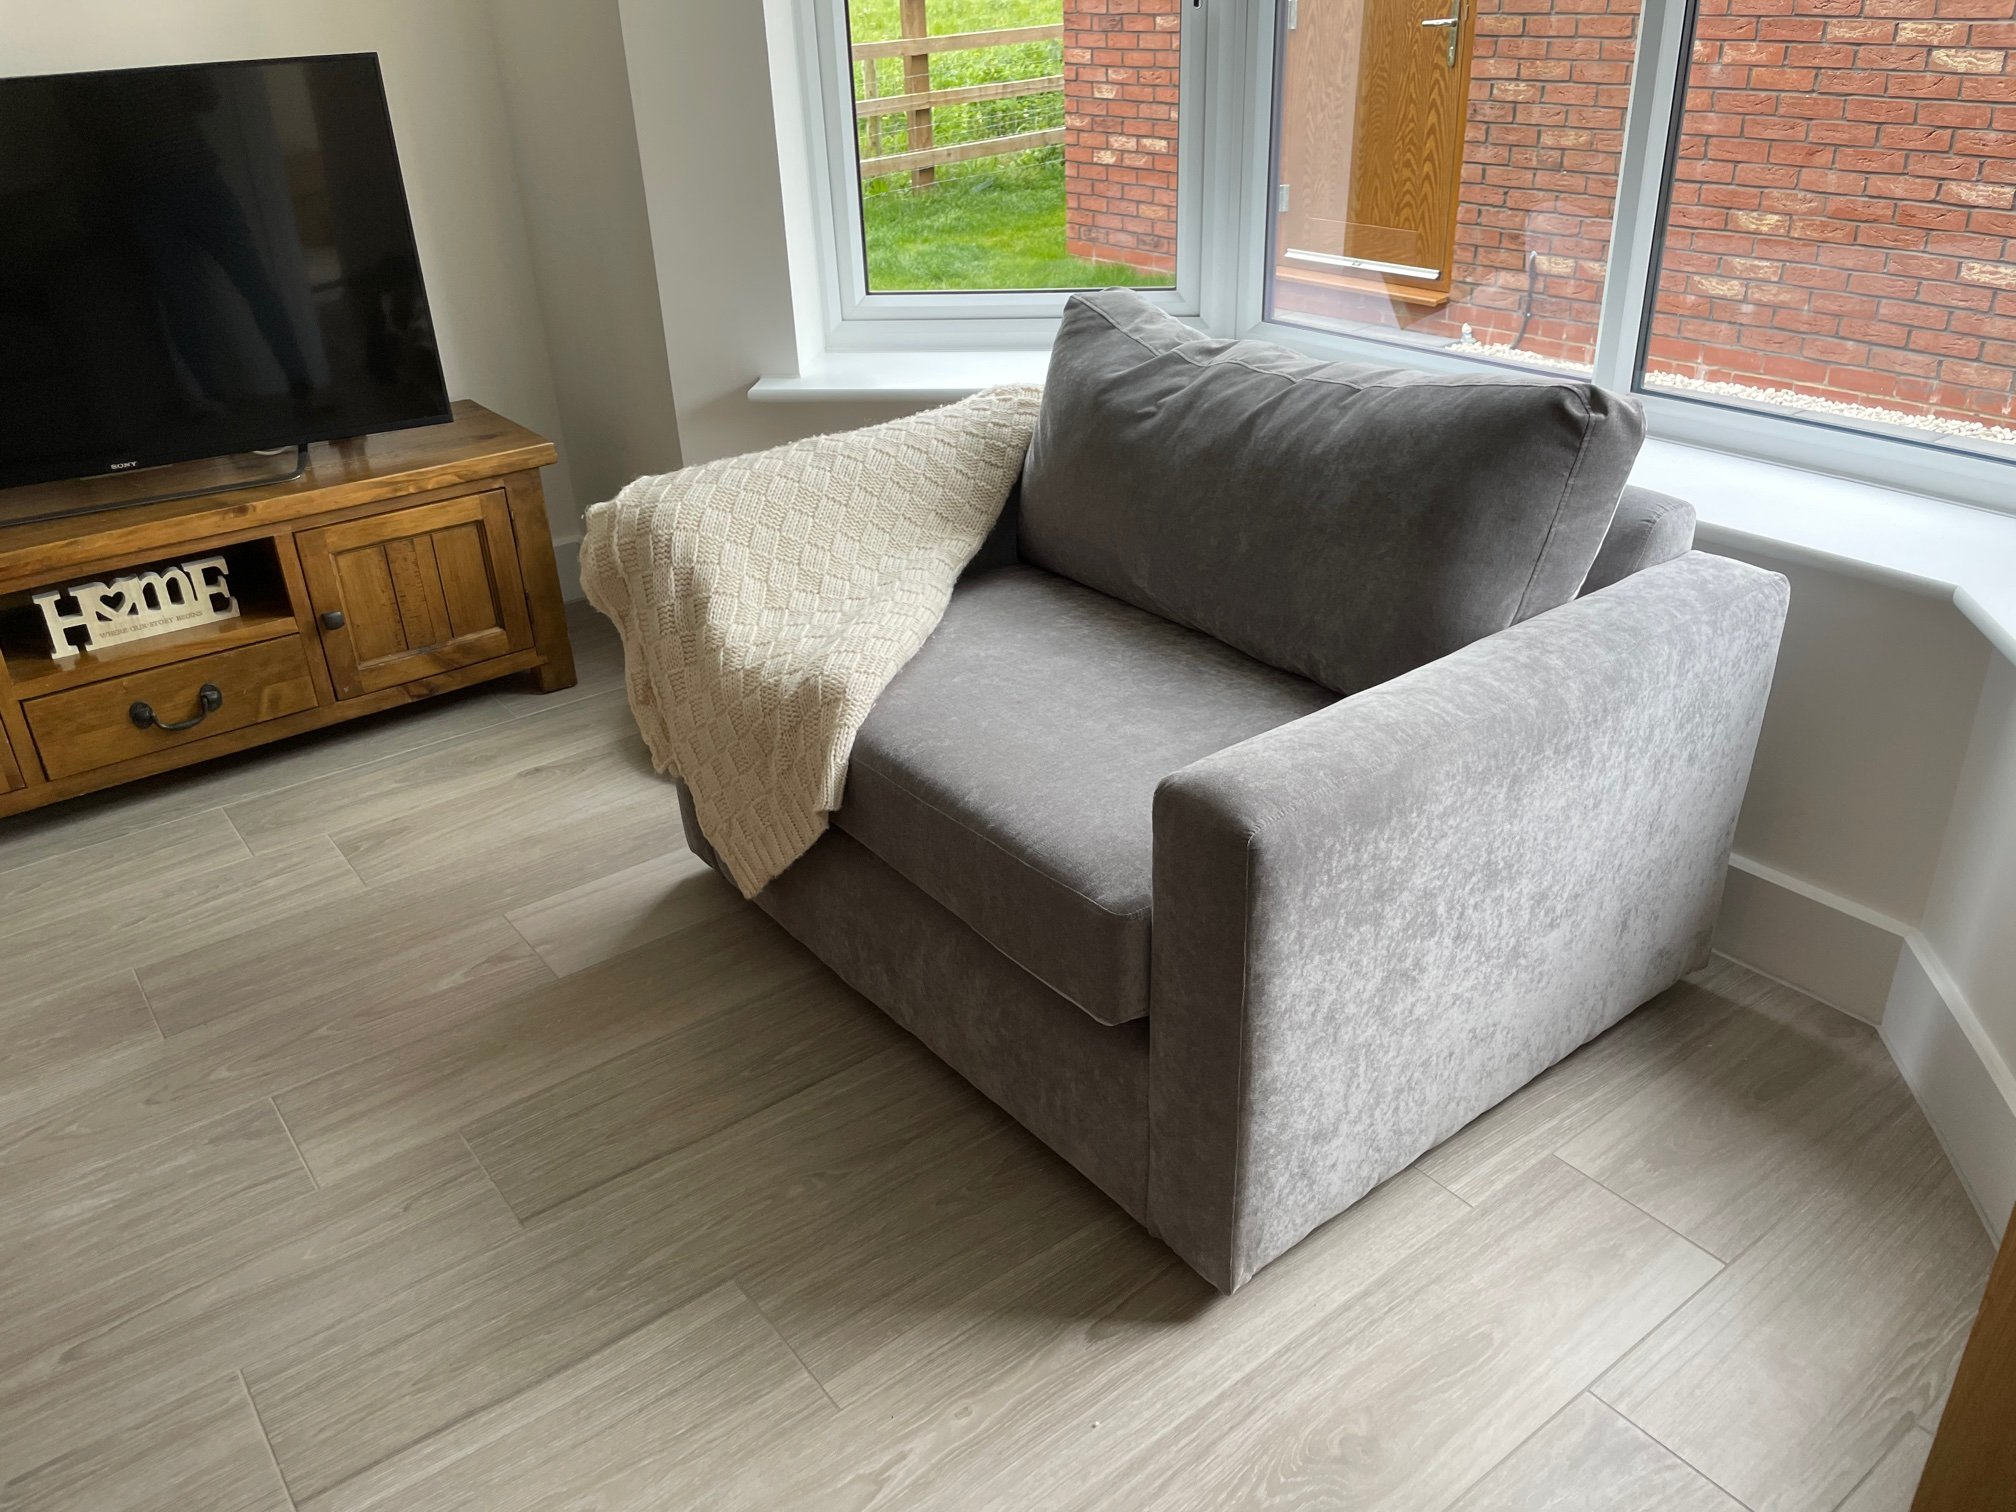 Sofas and sofa beds in customers home image 2